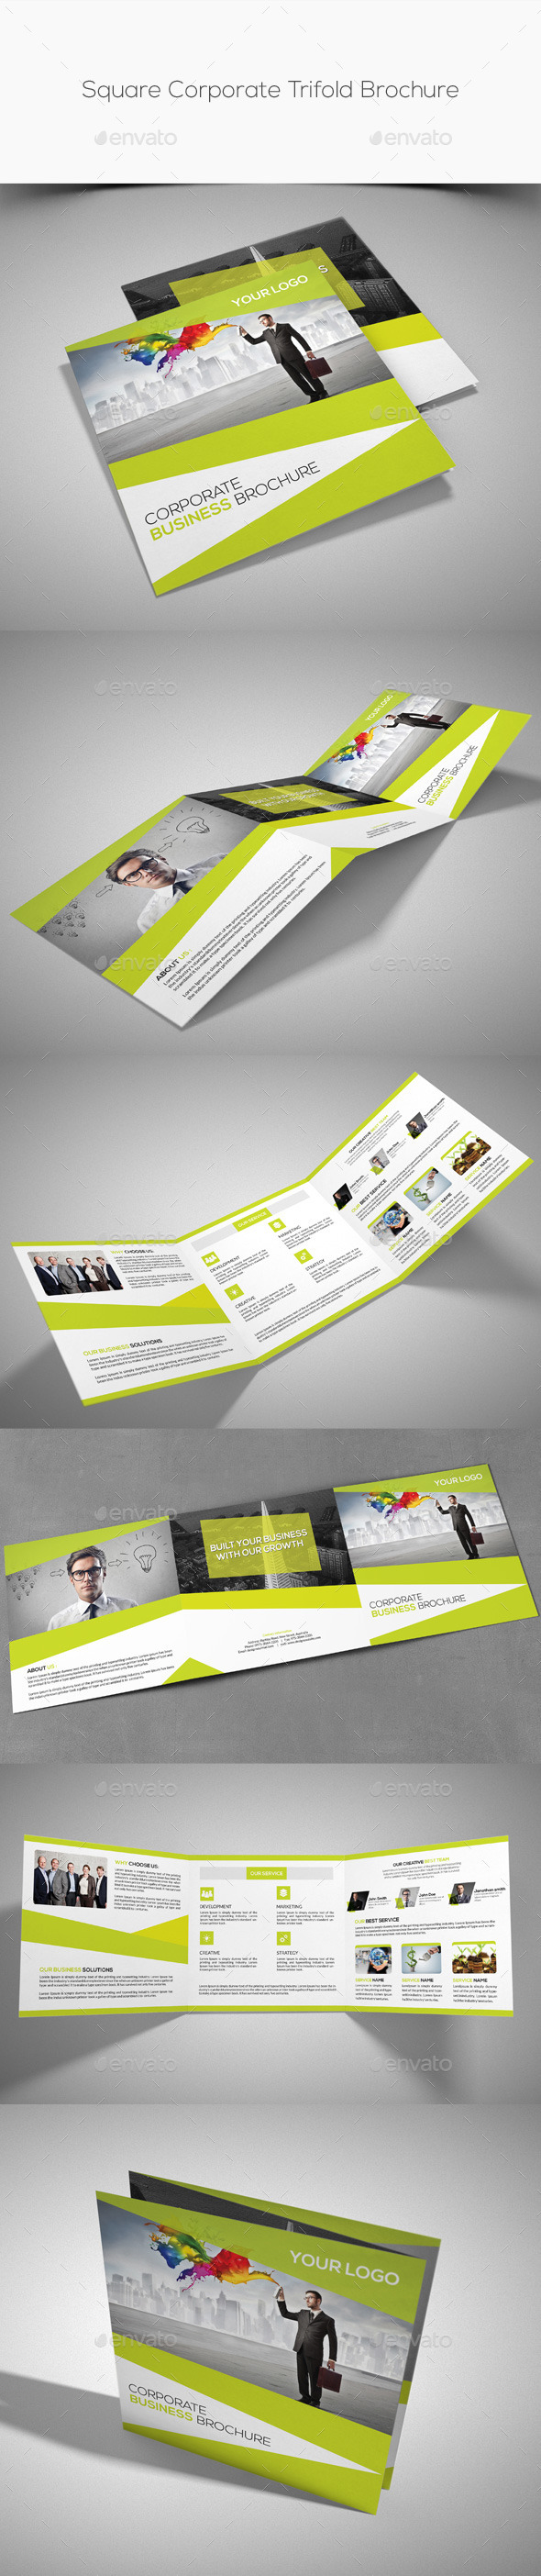 GraphicRiver Square Corporate Trifold Brochure 11177200